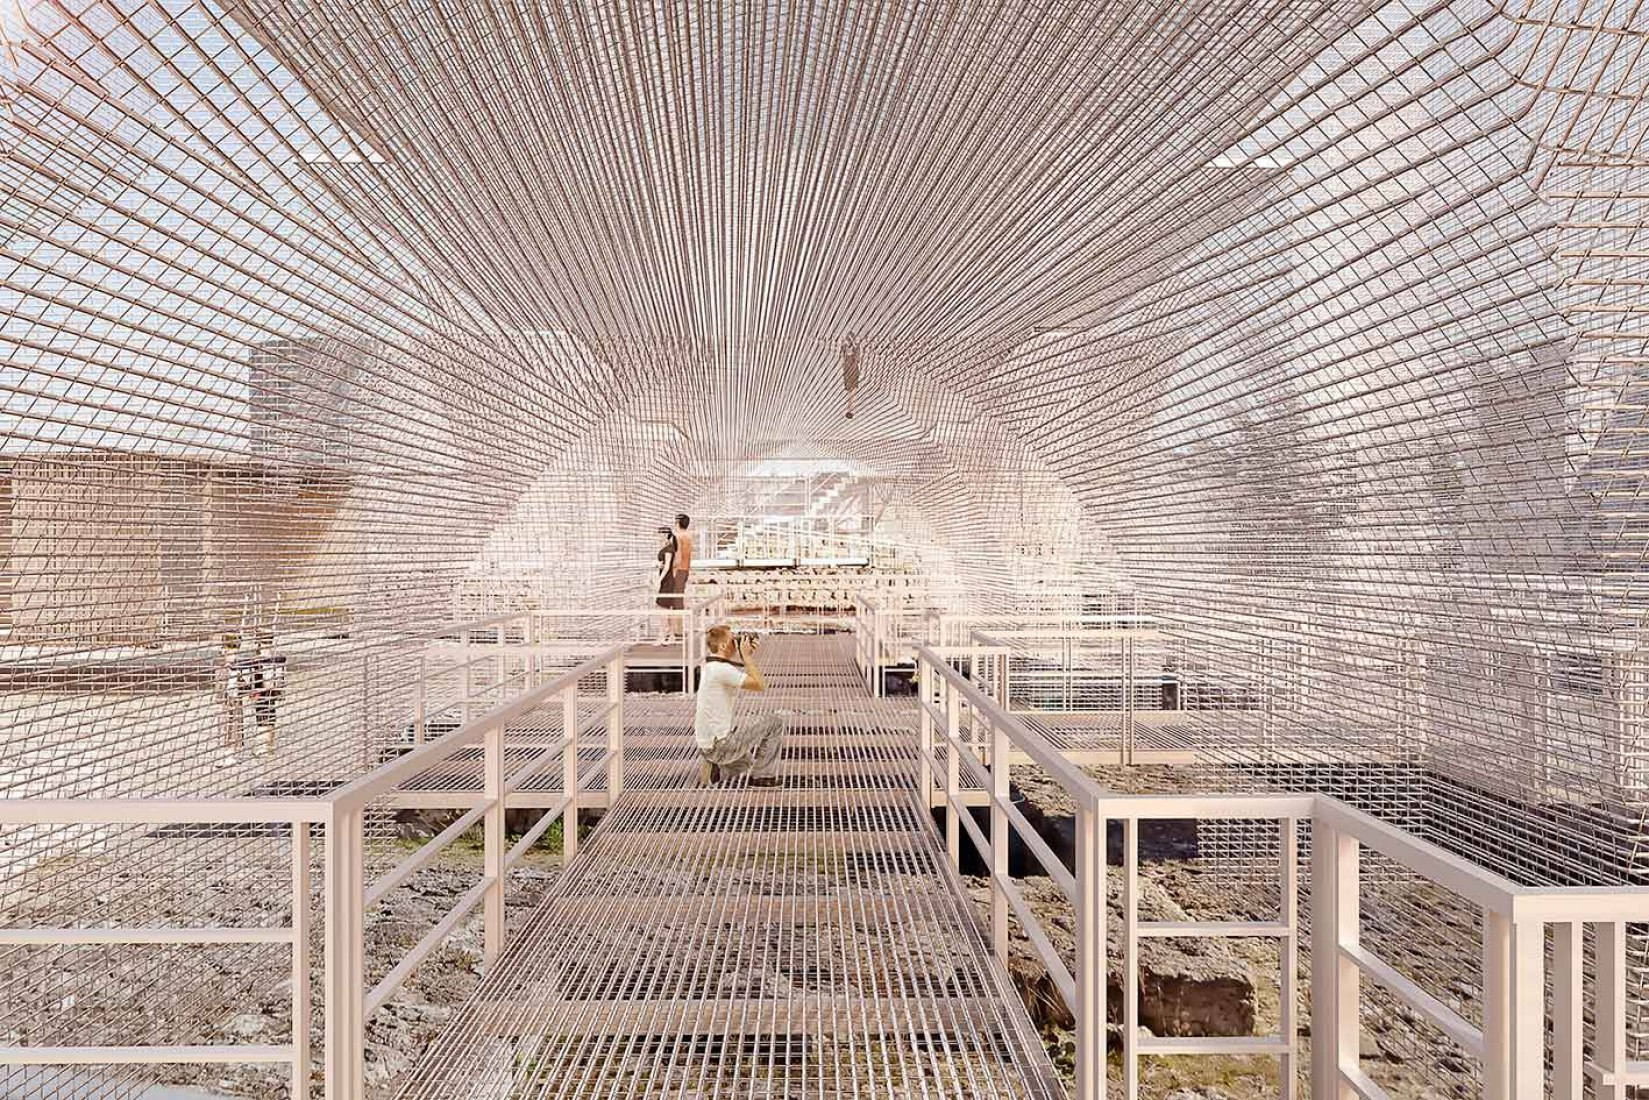 Interior view of the proposal. Castles in the air by AU arquitectos + AJO taller de arquitectura. Image courtesy of AU arquitectos + AJO taller de arquitectura.